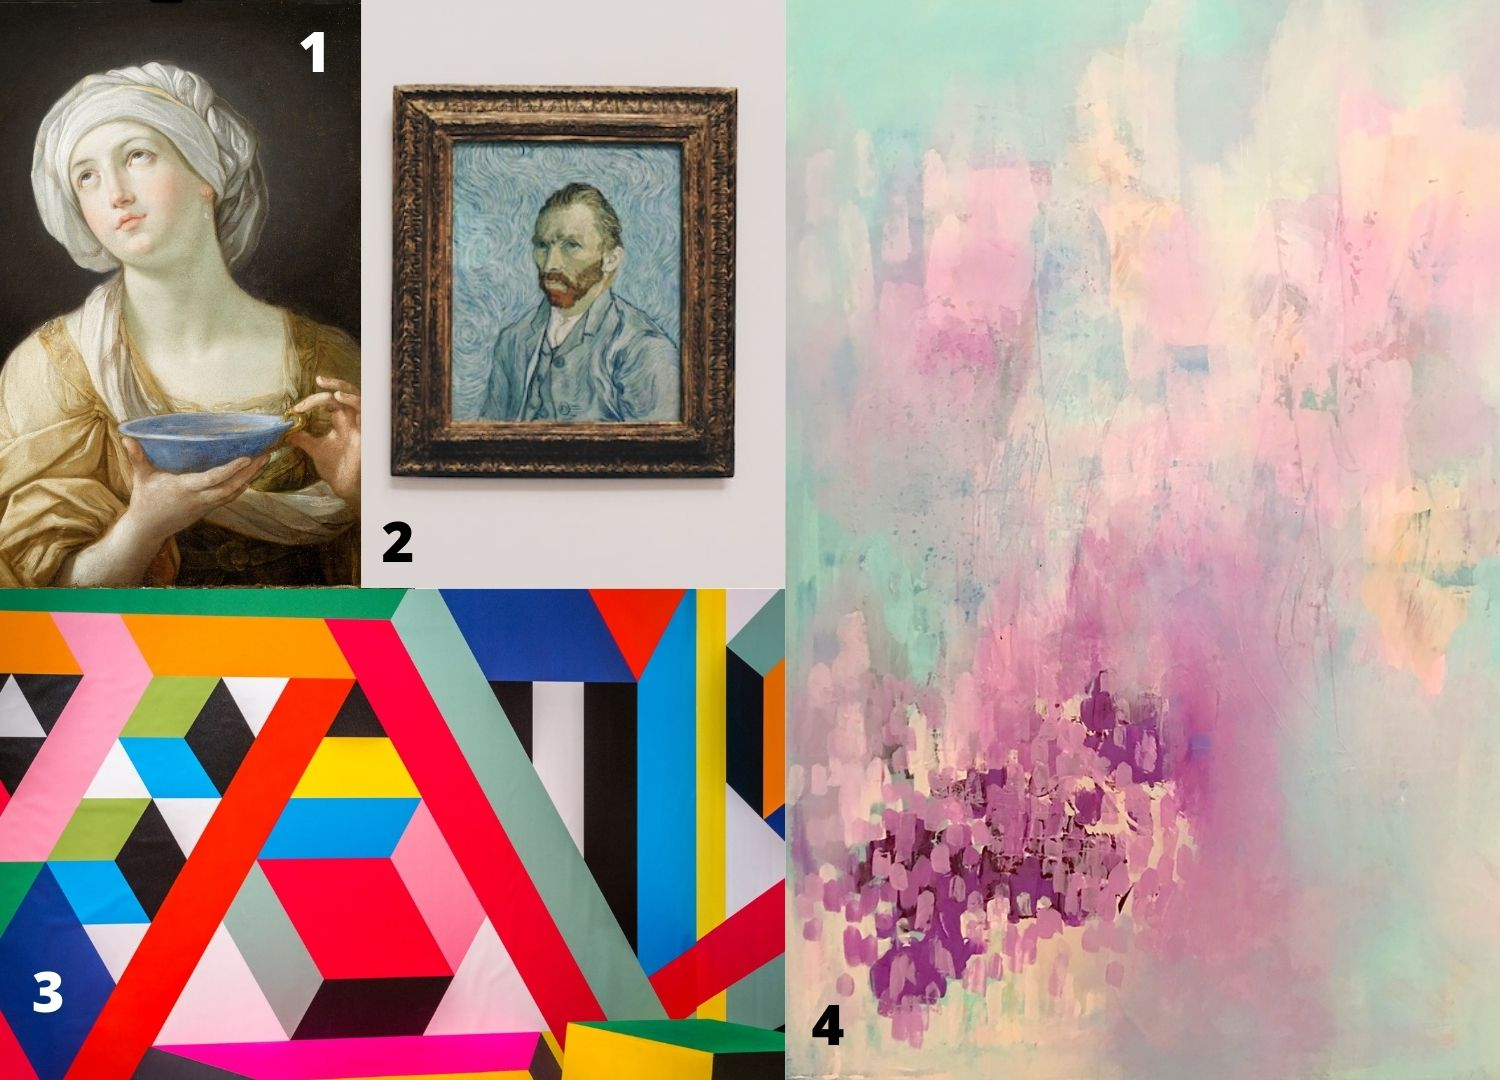 4 different art styles put together in a collage, modern art, abstract, realism, van gogh